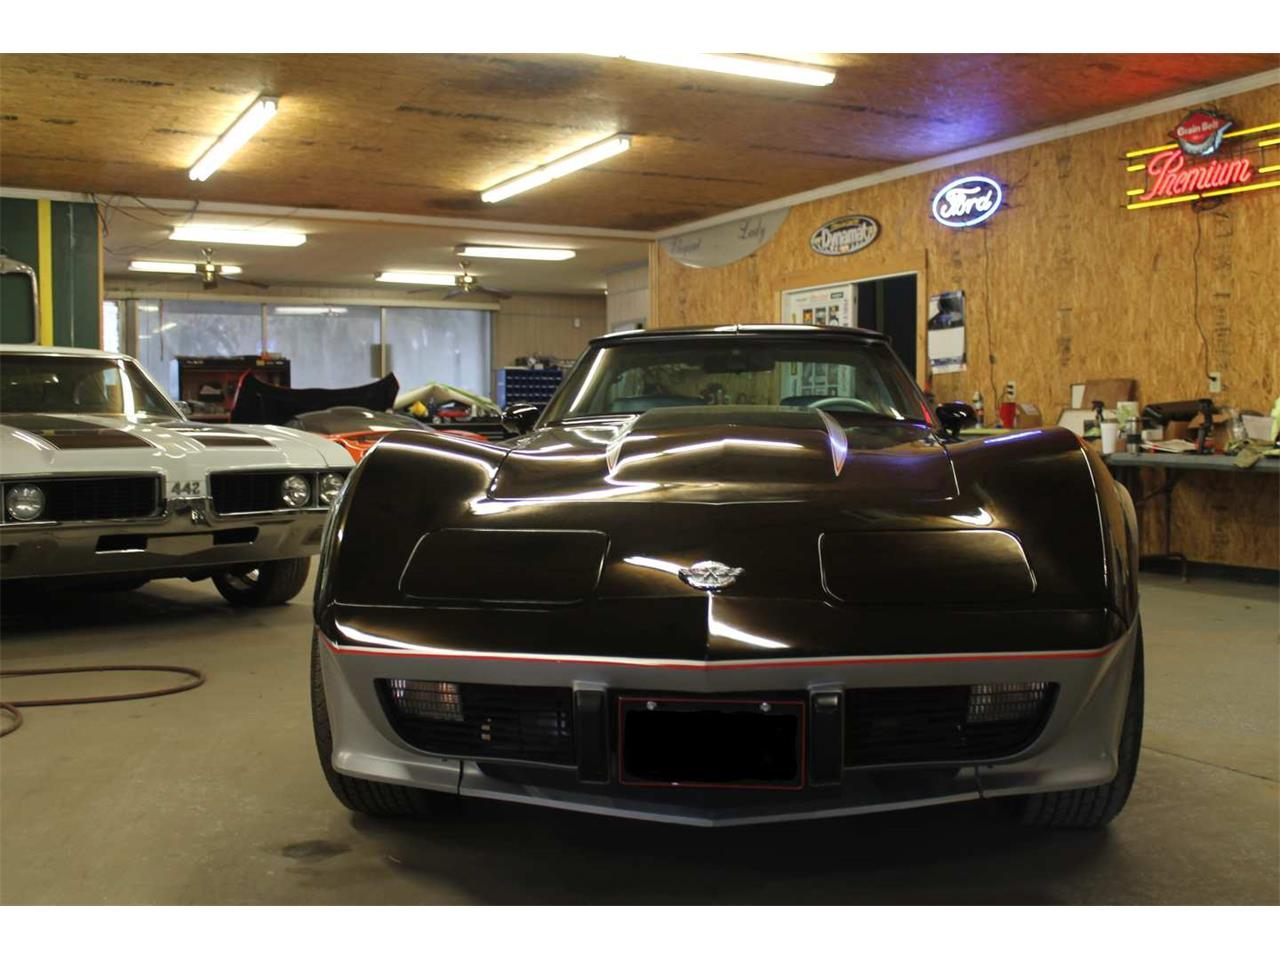 1978 Chevrolet Corvette (CC-1252357) for sale in Biloxi, Mississippi